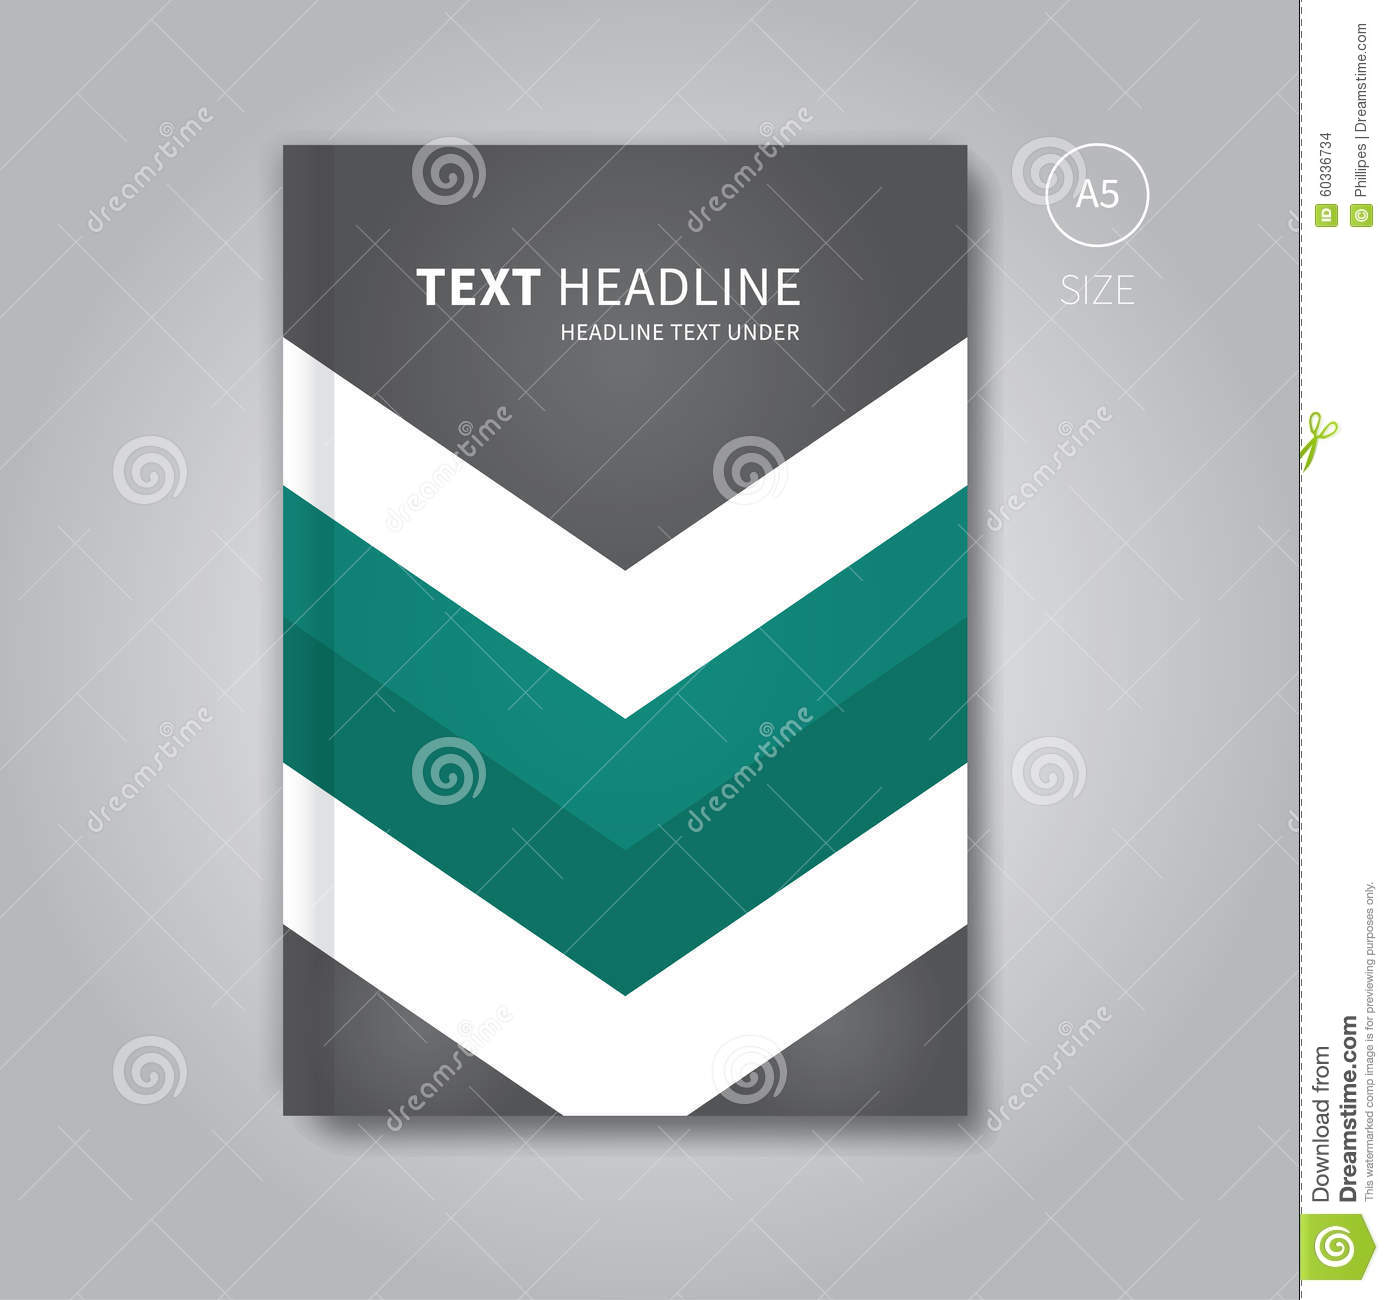 Business Book Cover Images : Business book design front cover stock vector image